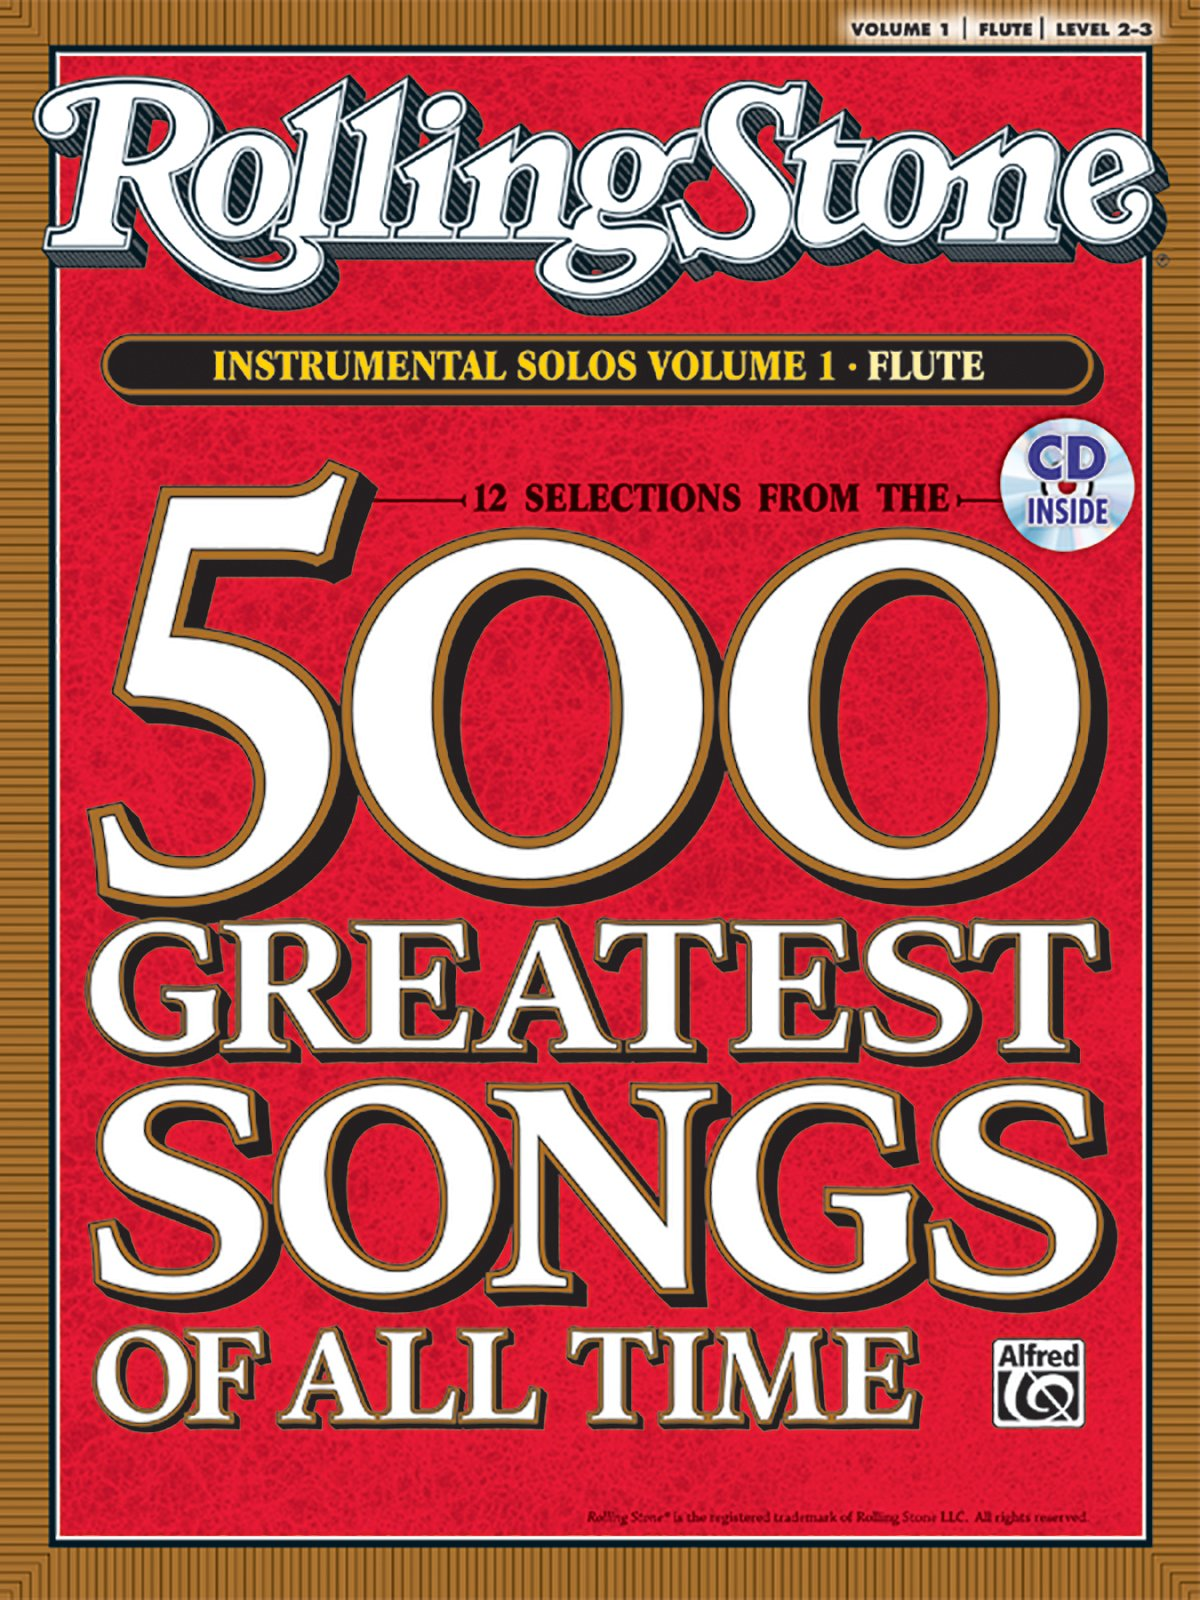 Selections from Rolling Stone Magazine's 500 Greatest Songs of All Time (Instrumental Solos), Vol 1: Flute, Book & CD (Rolling Stone Magazine's 500 Greatest Songs of All Time, Vol 1)